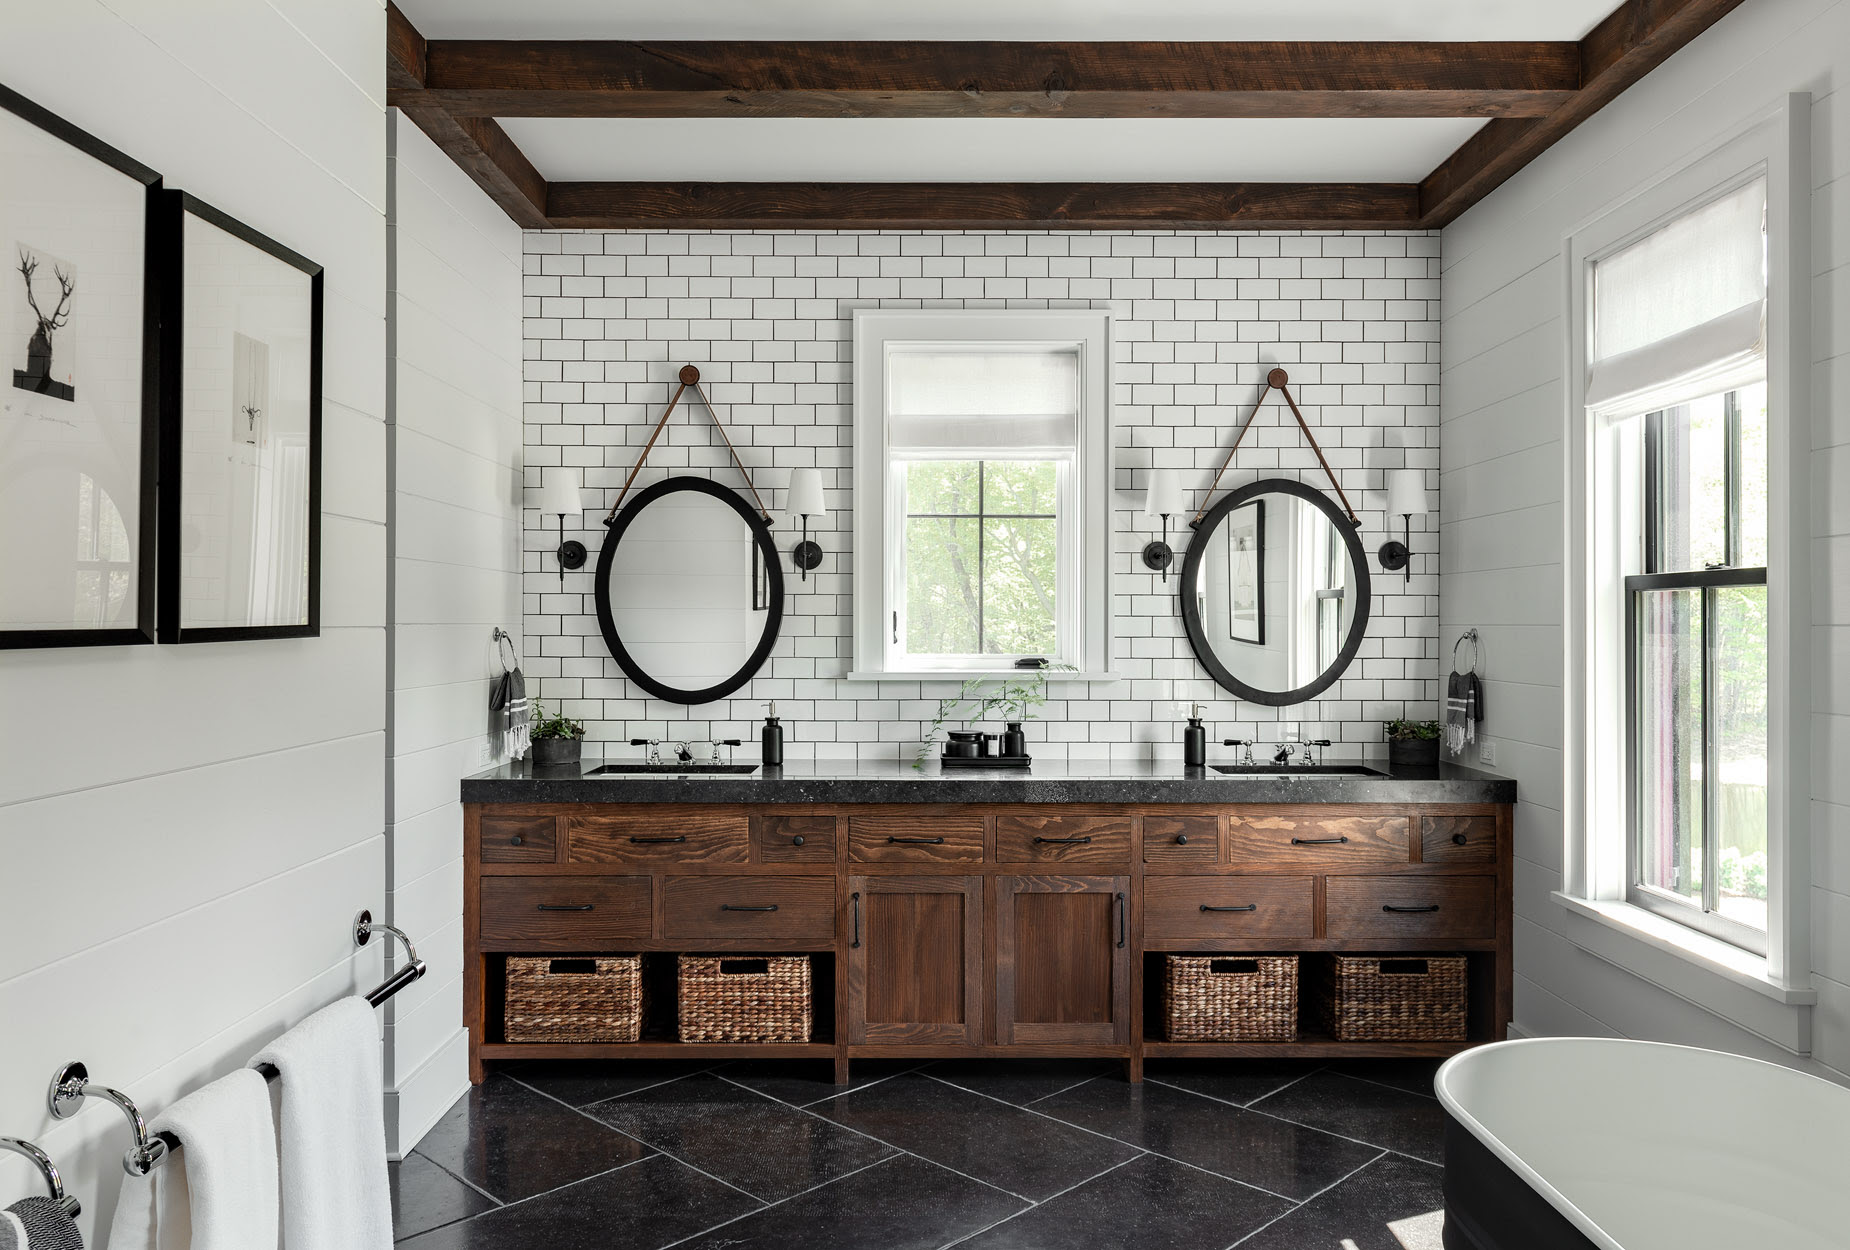 15 Very Different Bathrooms - On the Drawing Board